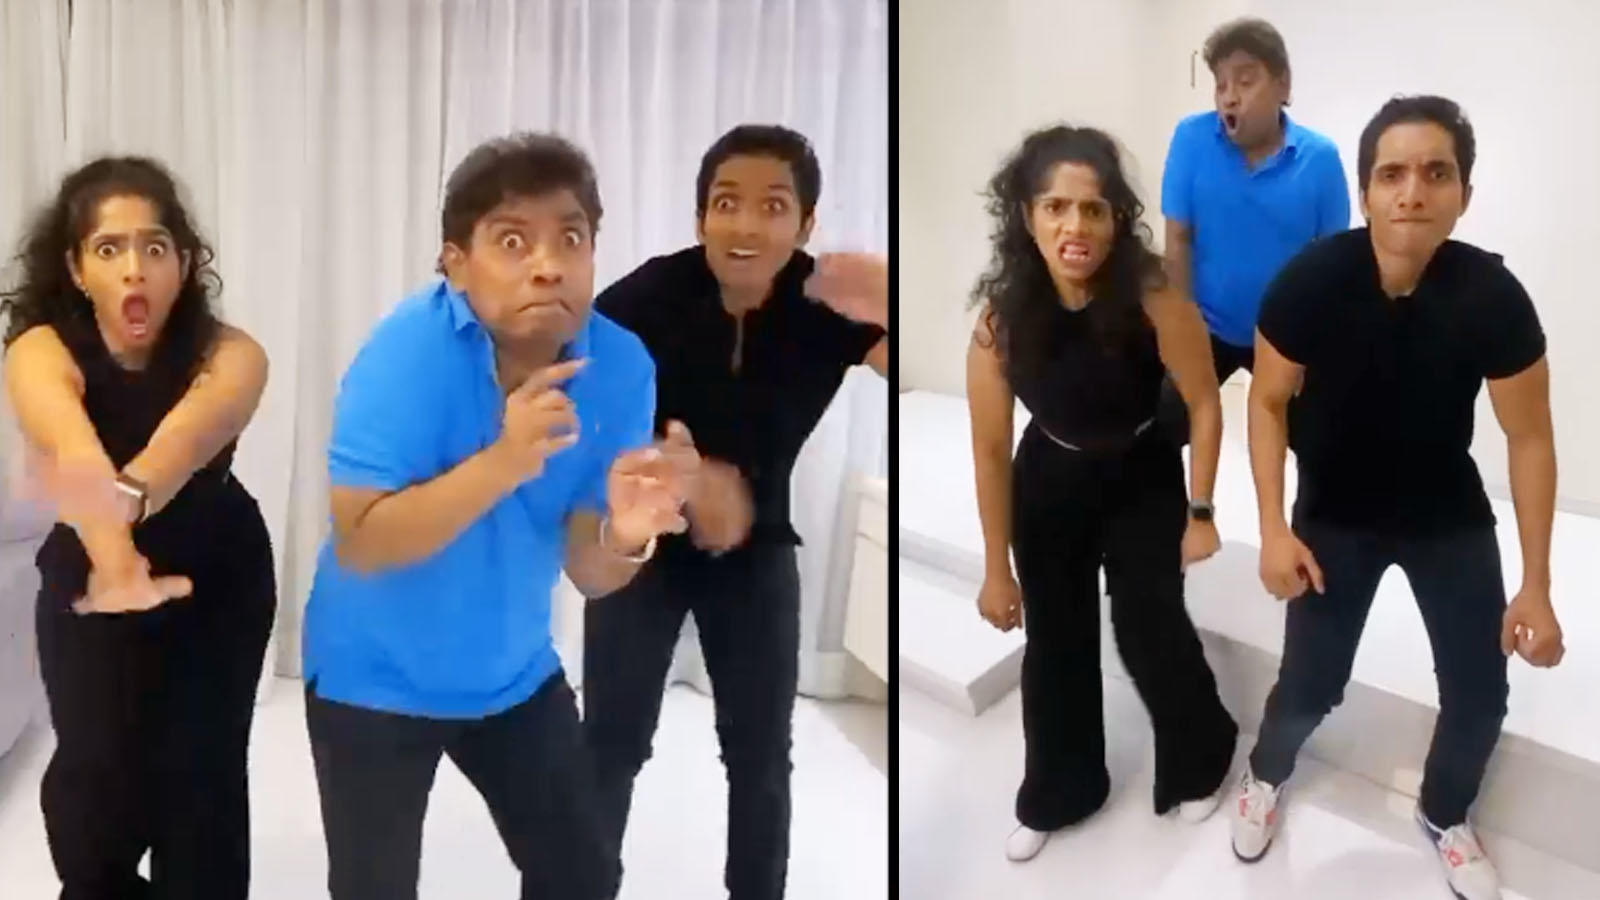 watch-johny-lever-takes-up-the-dont-touch-me-challenge-with-his-children-jamie-lever-and-jessey-lever-and-its-super-hilarious